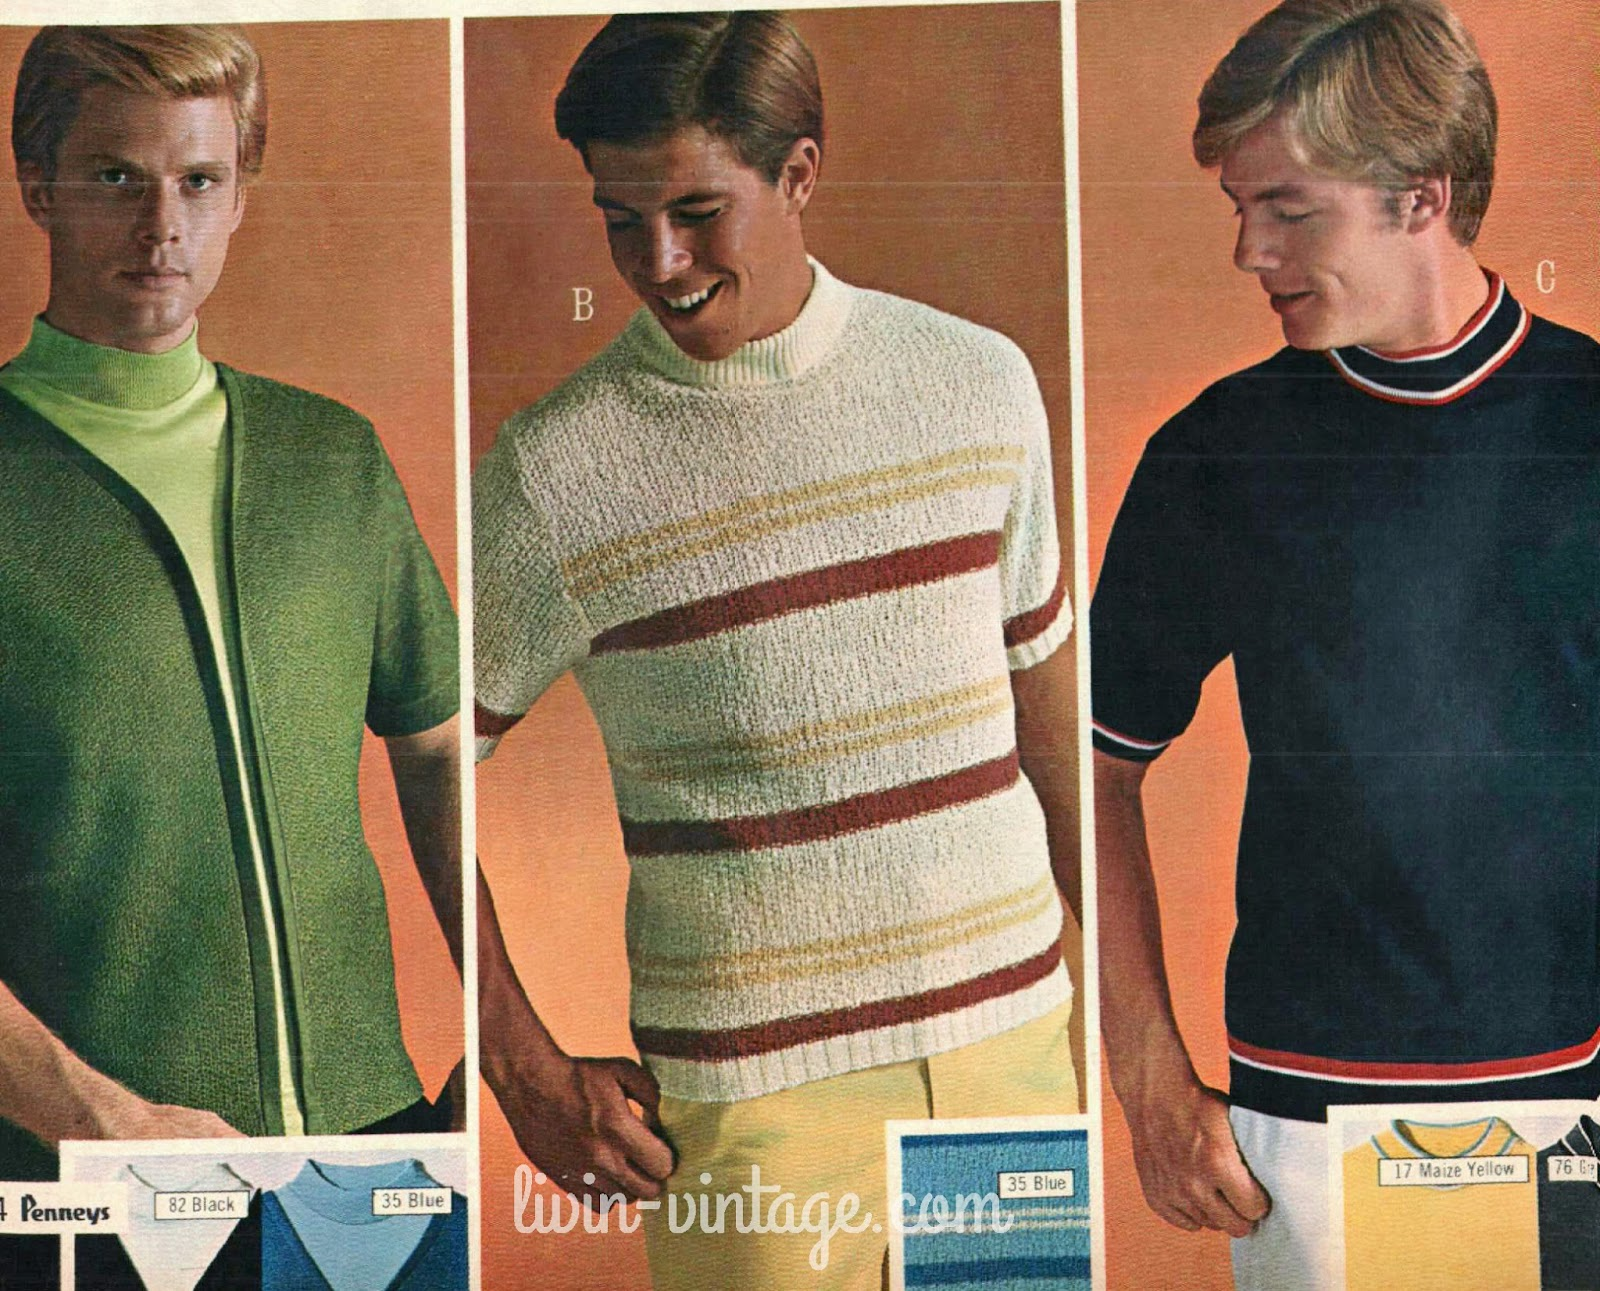 1960s Fashion: Men & Boys | Clothing Trends, Styles & Pictures